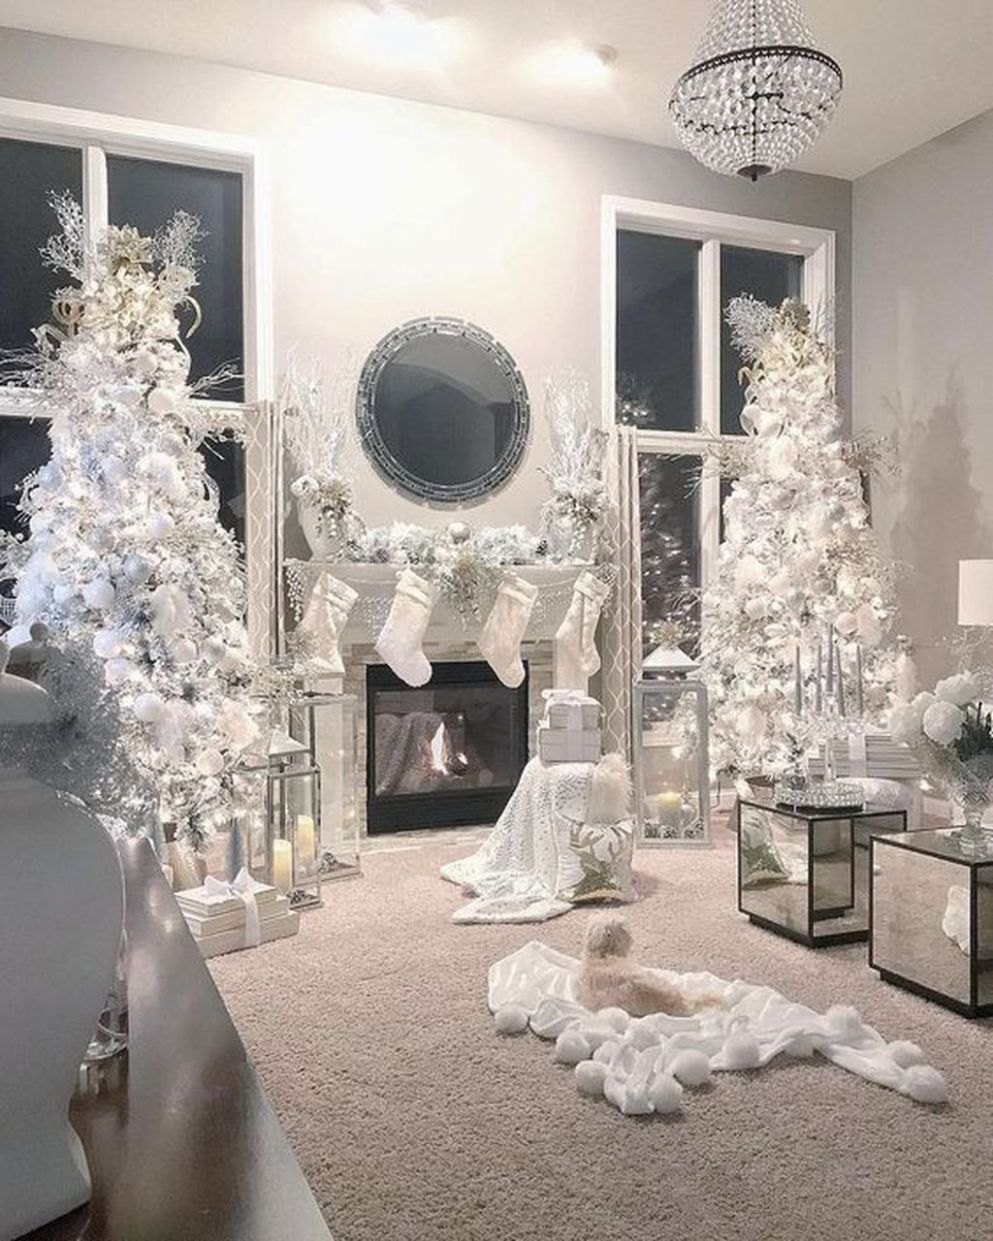 10 Stunning Luxury Christmas Home Decoration Ideas in 10 (With ..